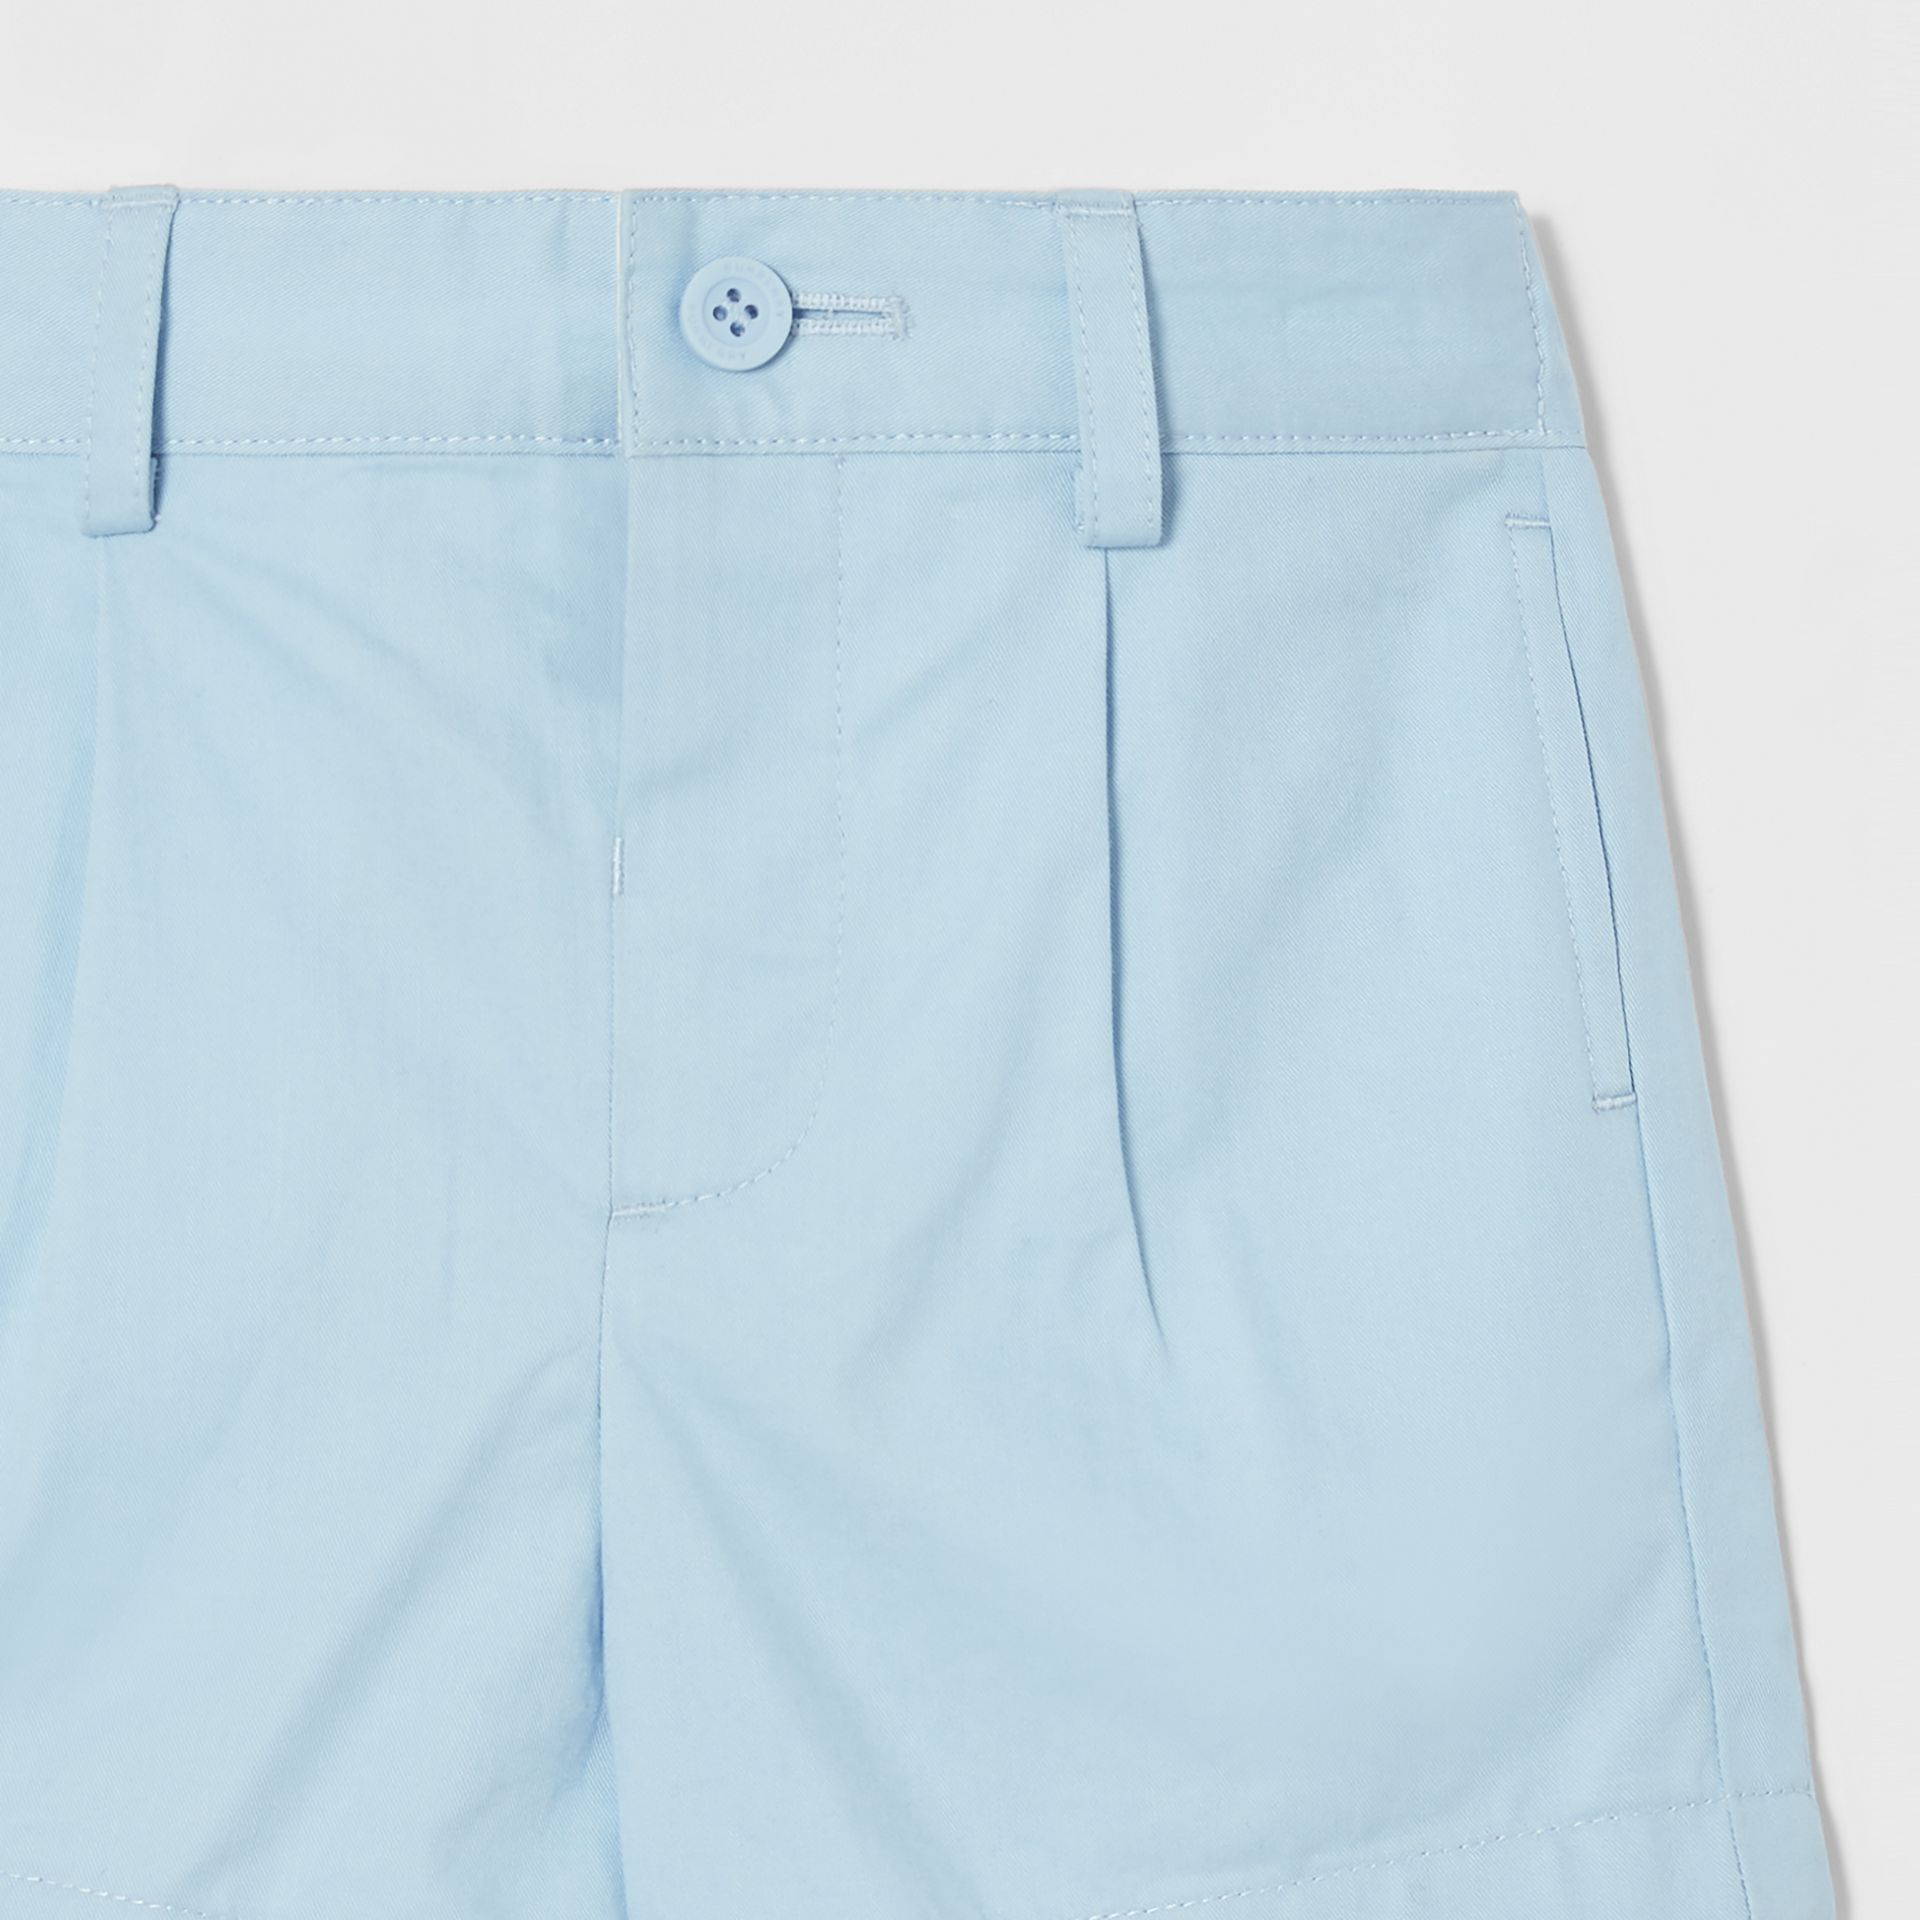 Logo Appliqué Cotton Twill Tailored Shorts in Pale Blue - Children | Burberry - gallery image 4